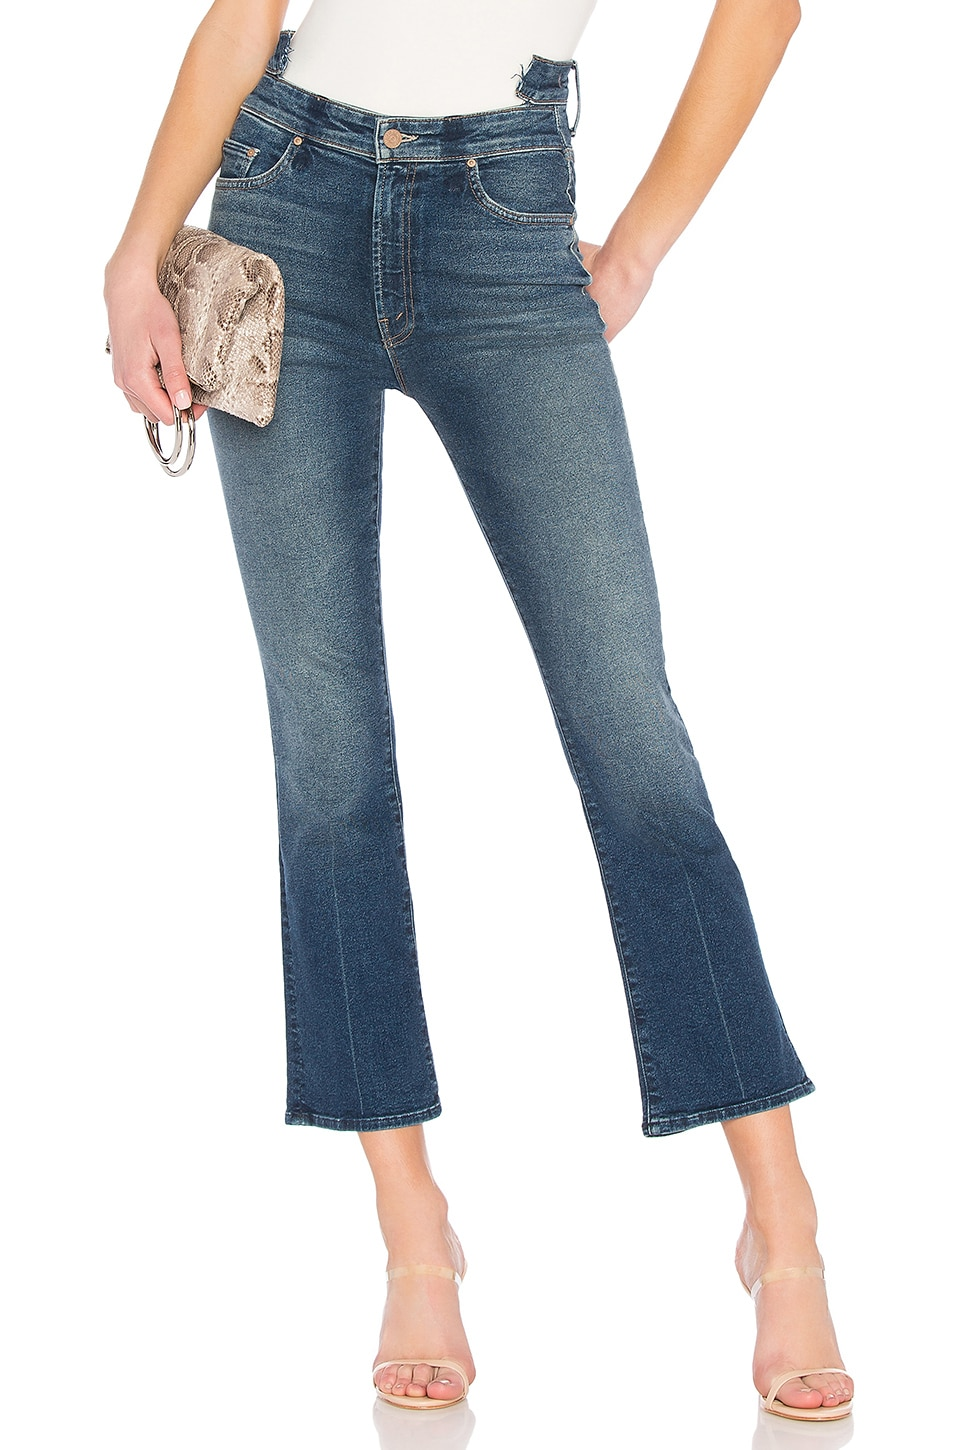 The Shift Insider Ankle Jean